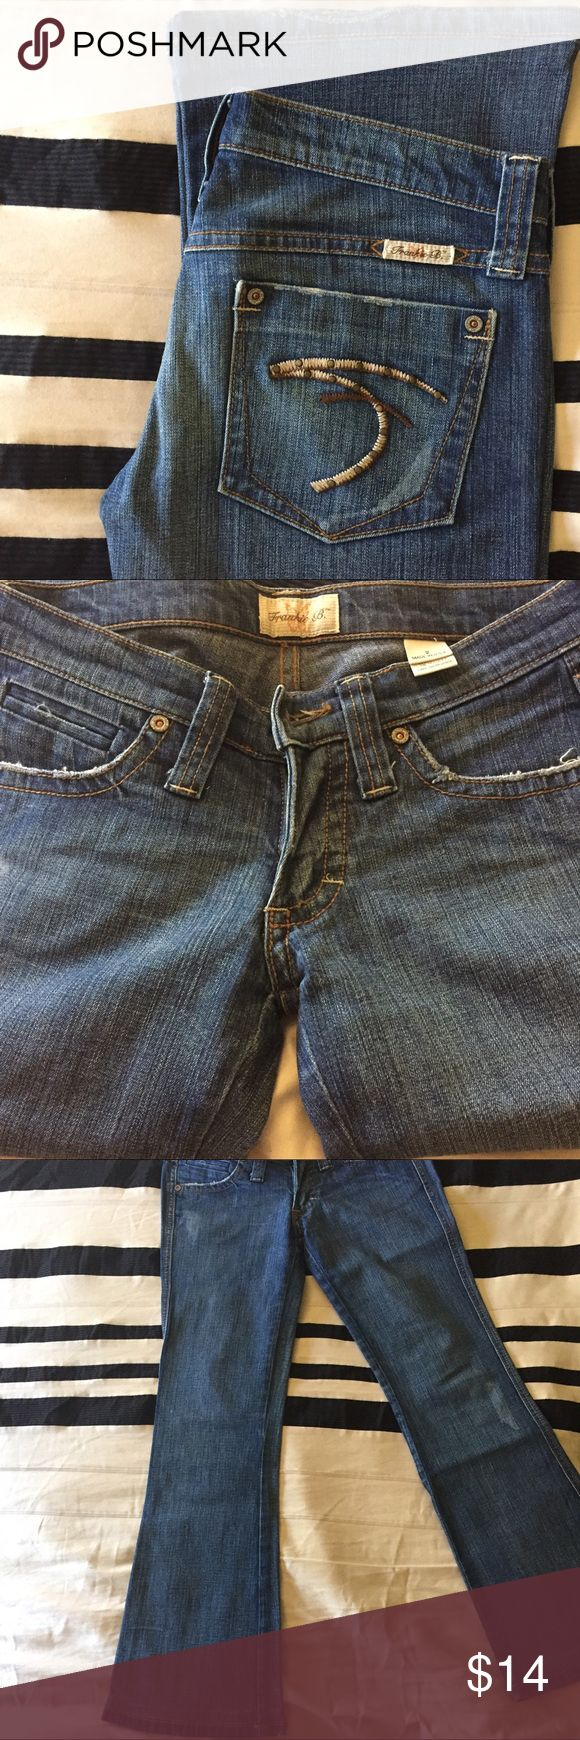 """Frankie B 27.5"""" Inseam Flare Jeans Please note, these jeans have been professionally hemmed. They'd be perfect if you're 5'0""""! Really low waisted flare jeans; front rise is 6.5"""". Inseam is approximately 27.5"""". Leg opening is 18"""". 99% cotton and 1% spandex.❗️Price on this item is final❗️ Frankie B. Jeans Flare & Wide Leg"""